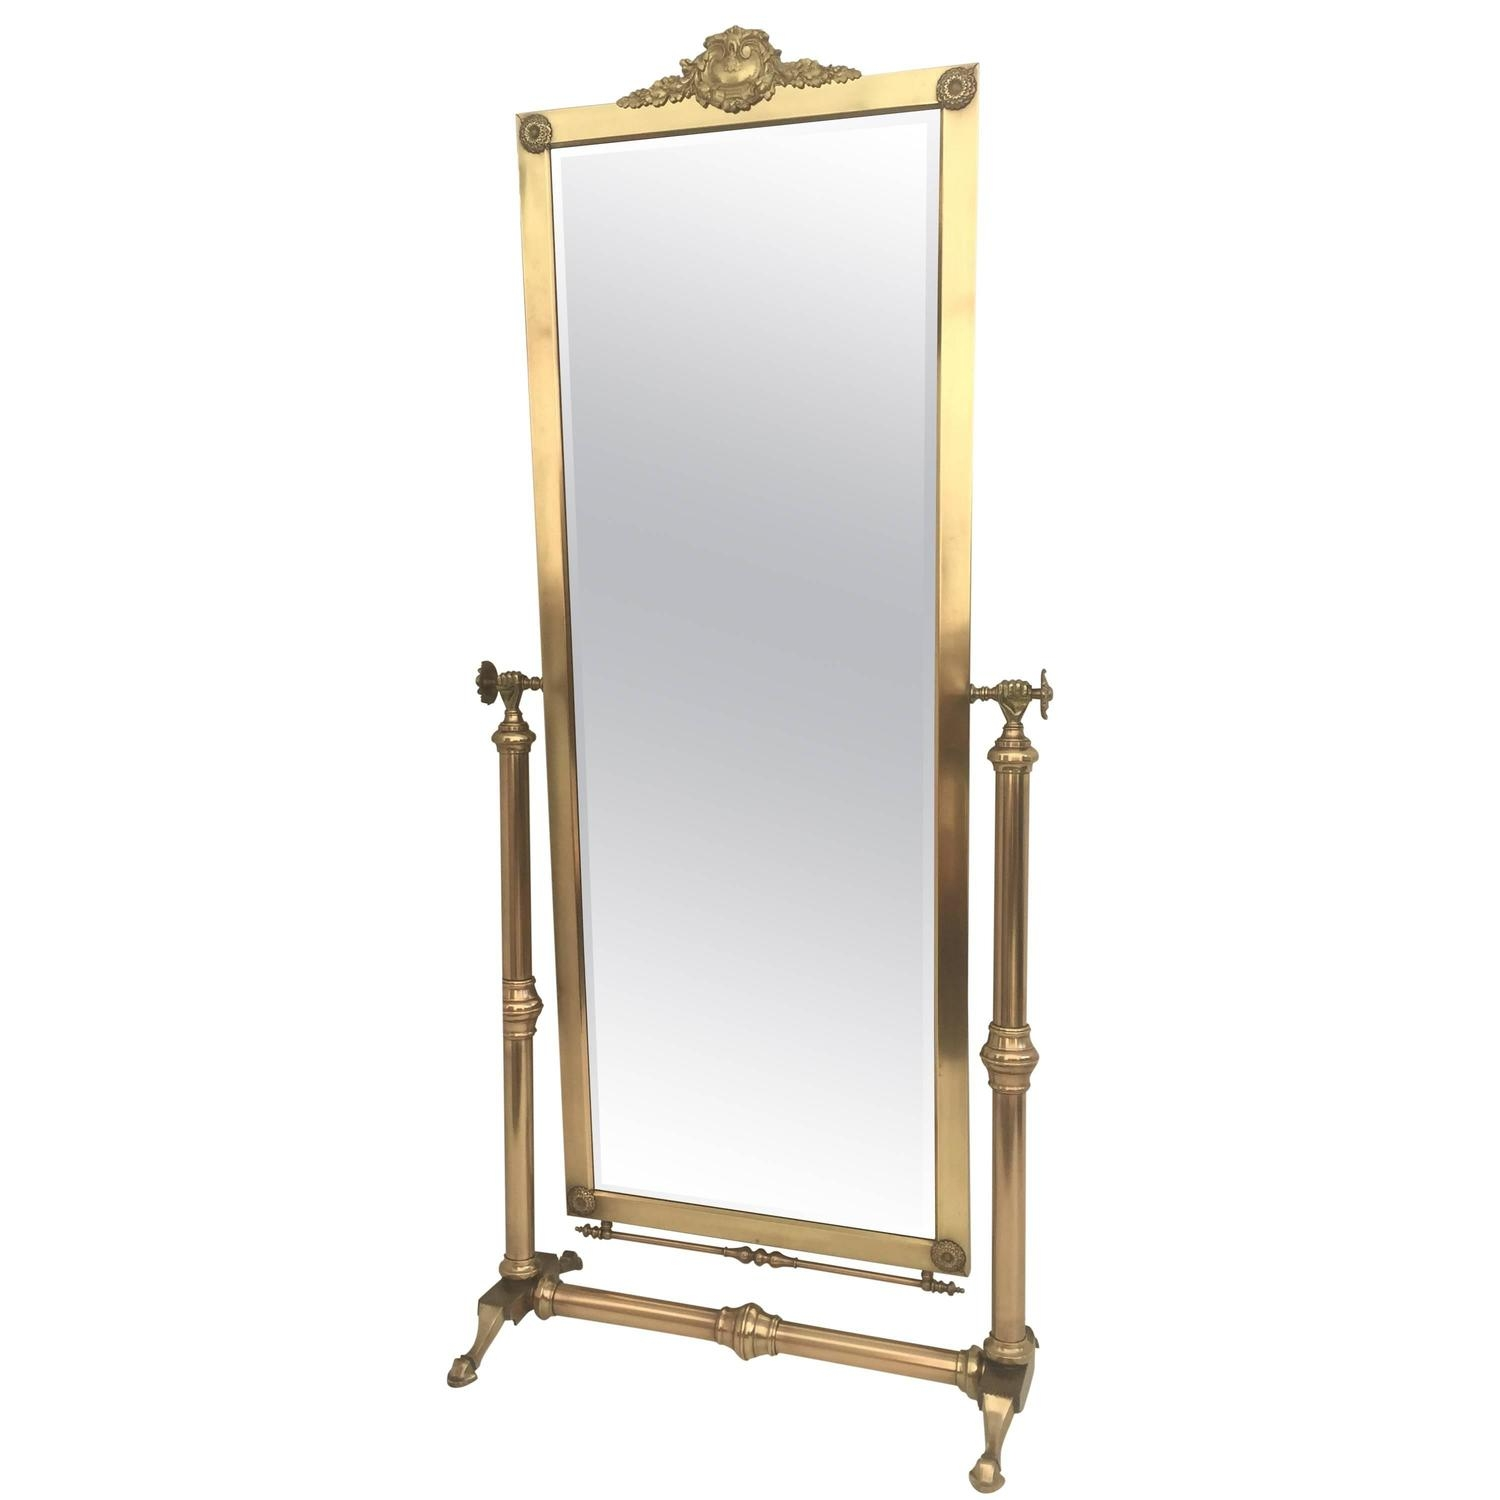 Brass Floor Mirrors And Full Length Mirrors 83 For Sale At 1stdibs With Victorian Floor Mirror (Image 3 of 15)